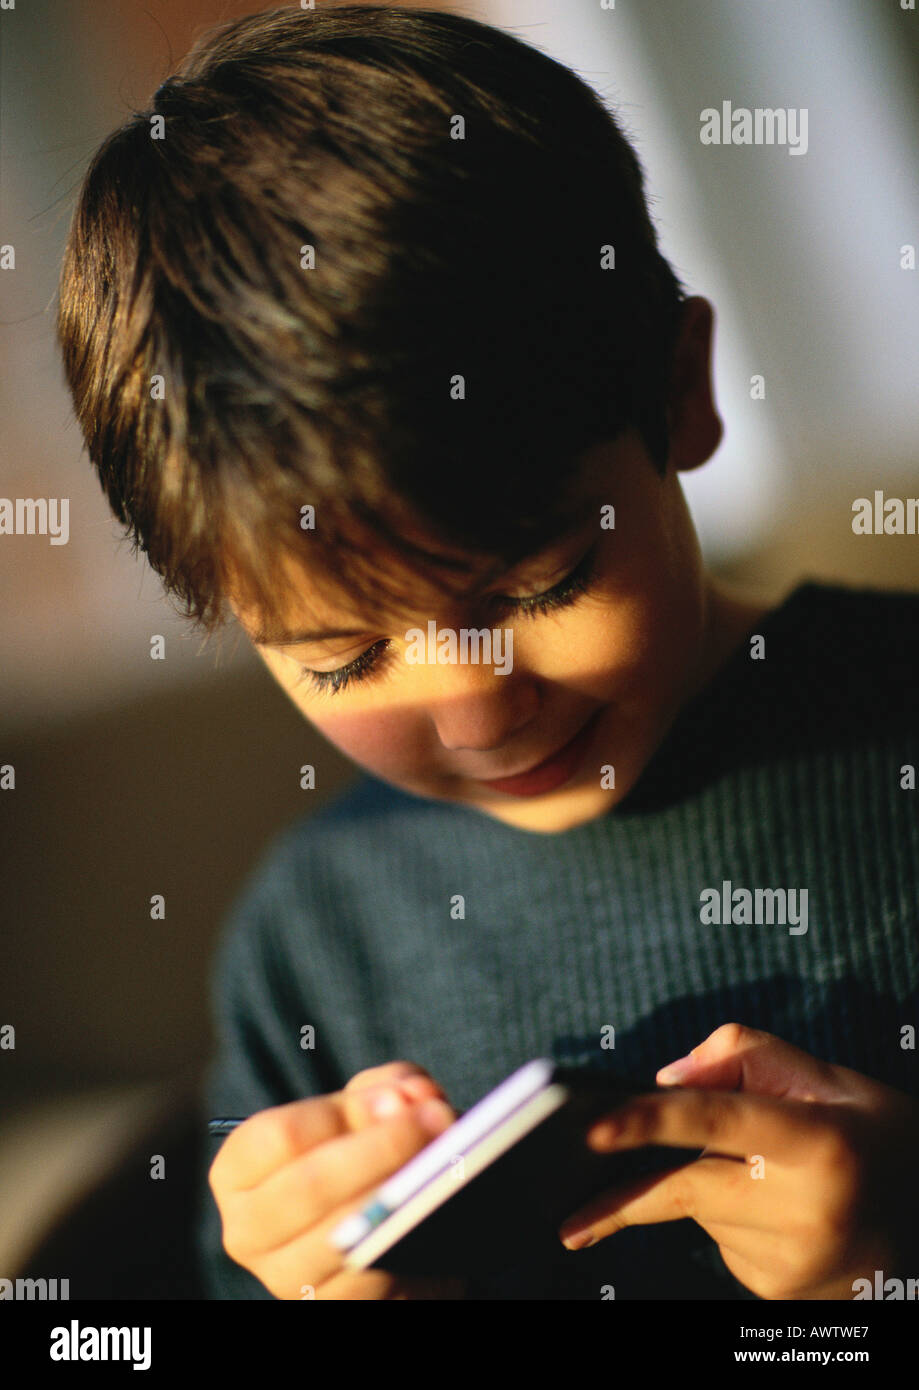 Young boy playing with hand held personal assistant, close up - Stock Image